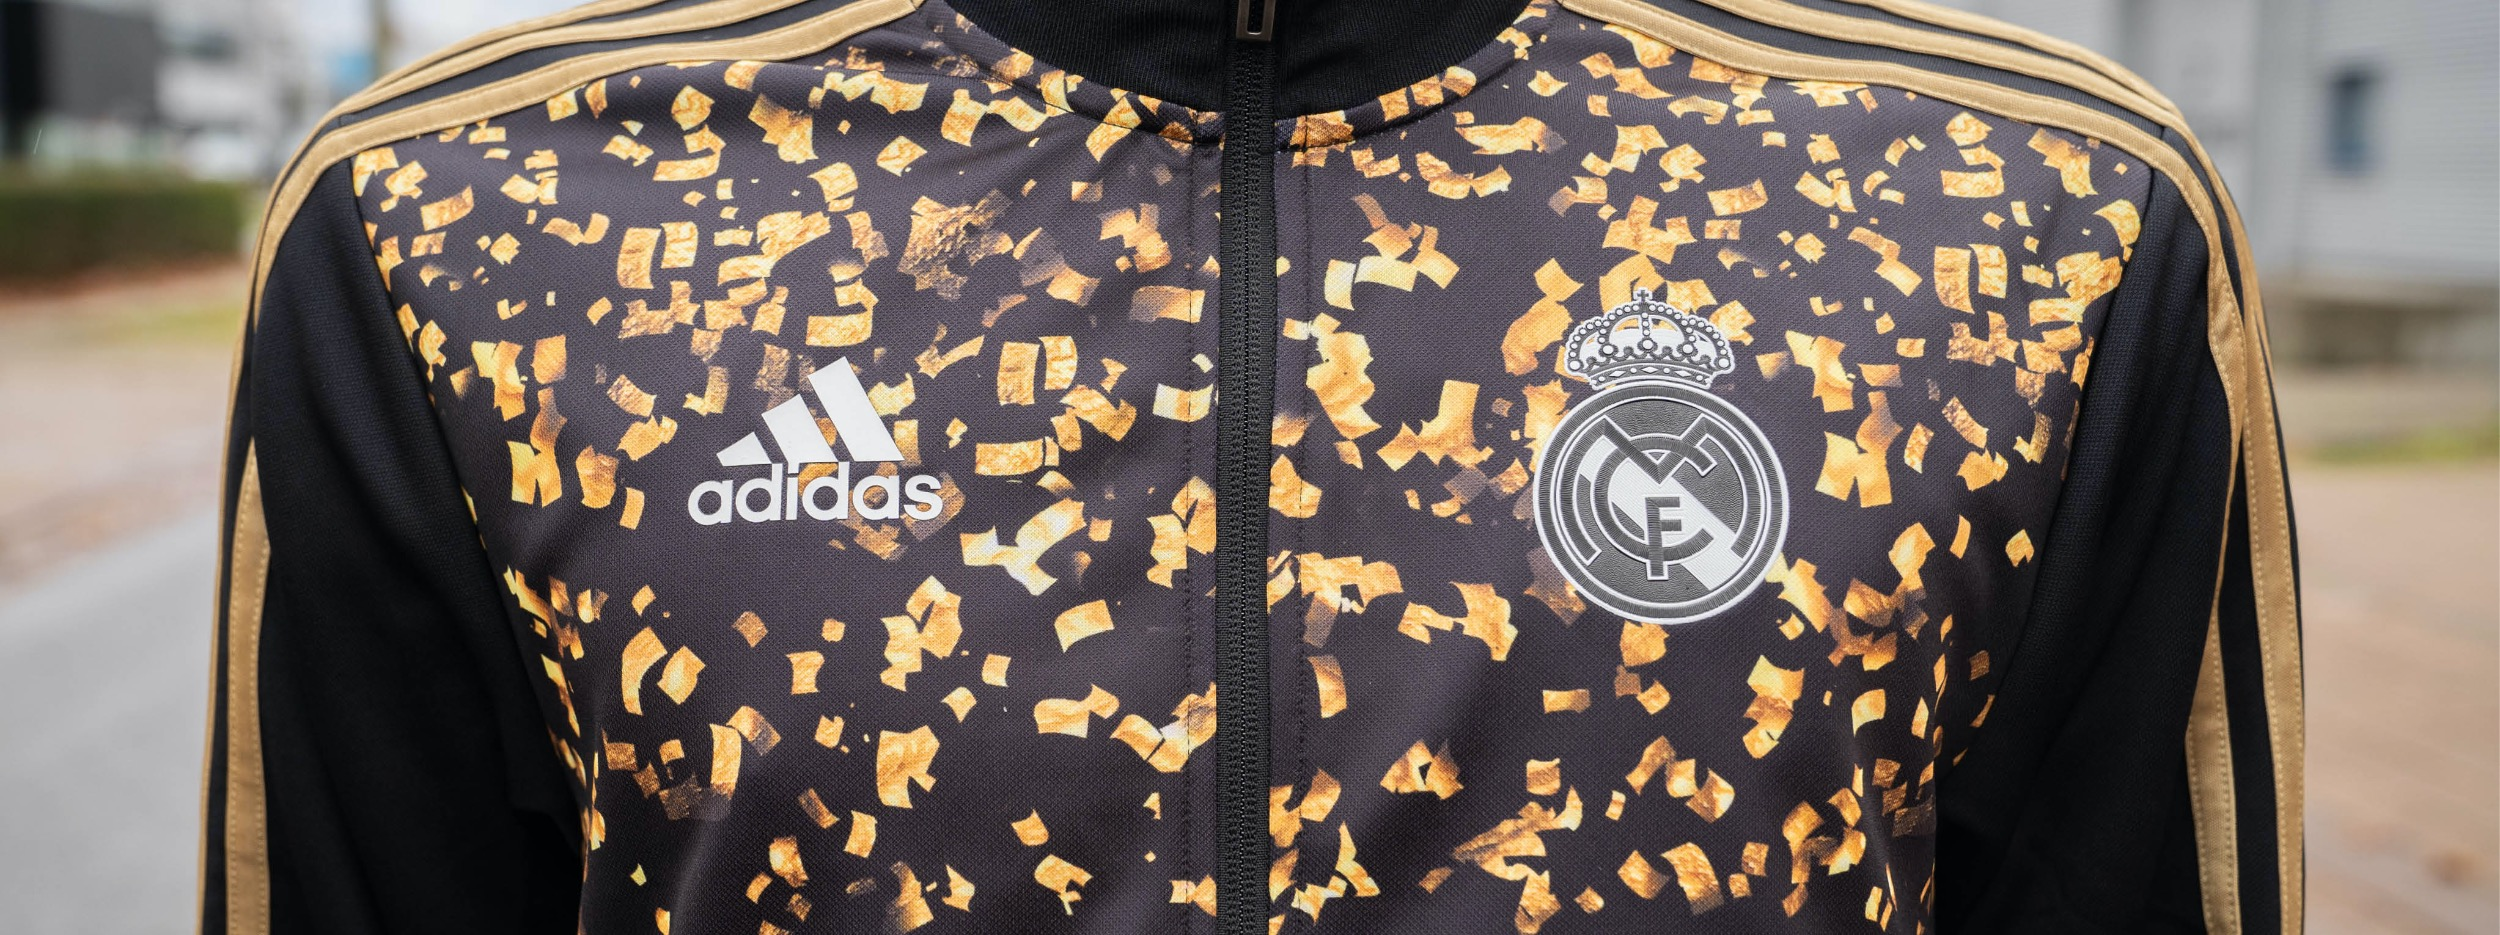 Real Madrid EA Jersey 2020